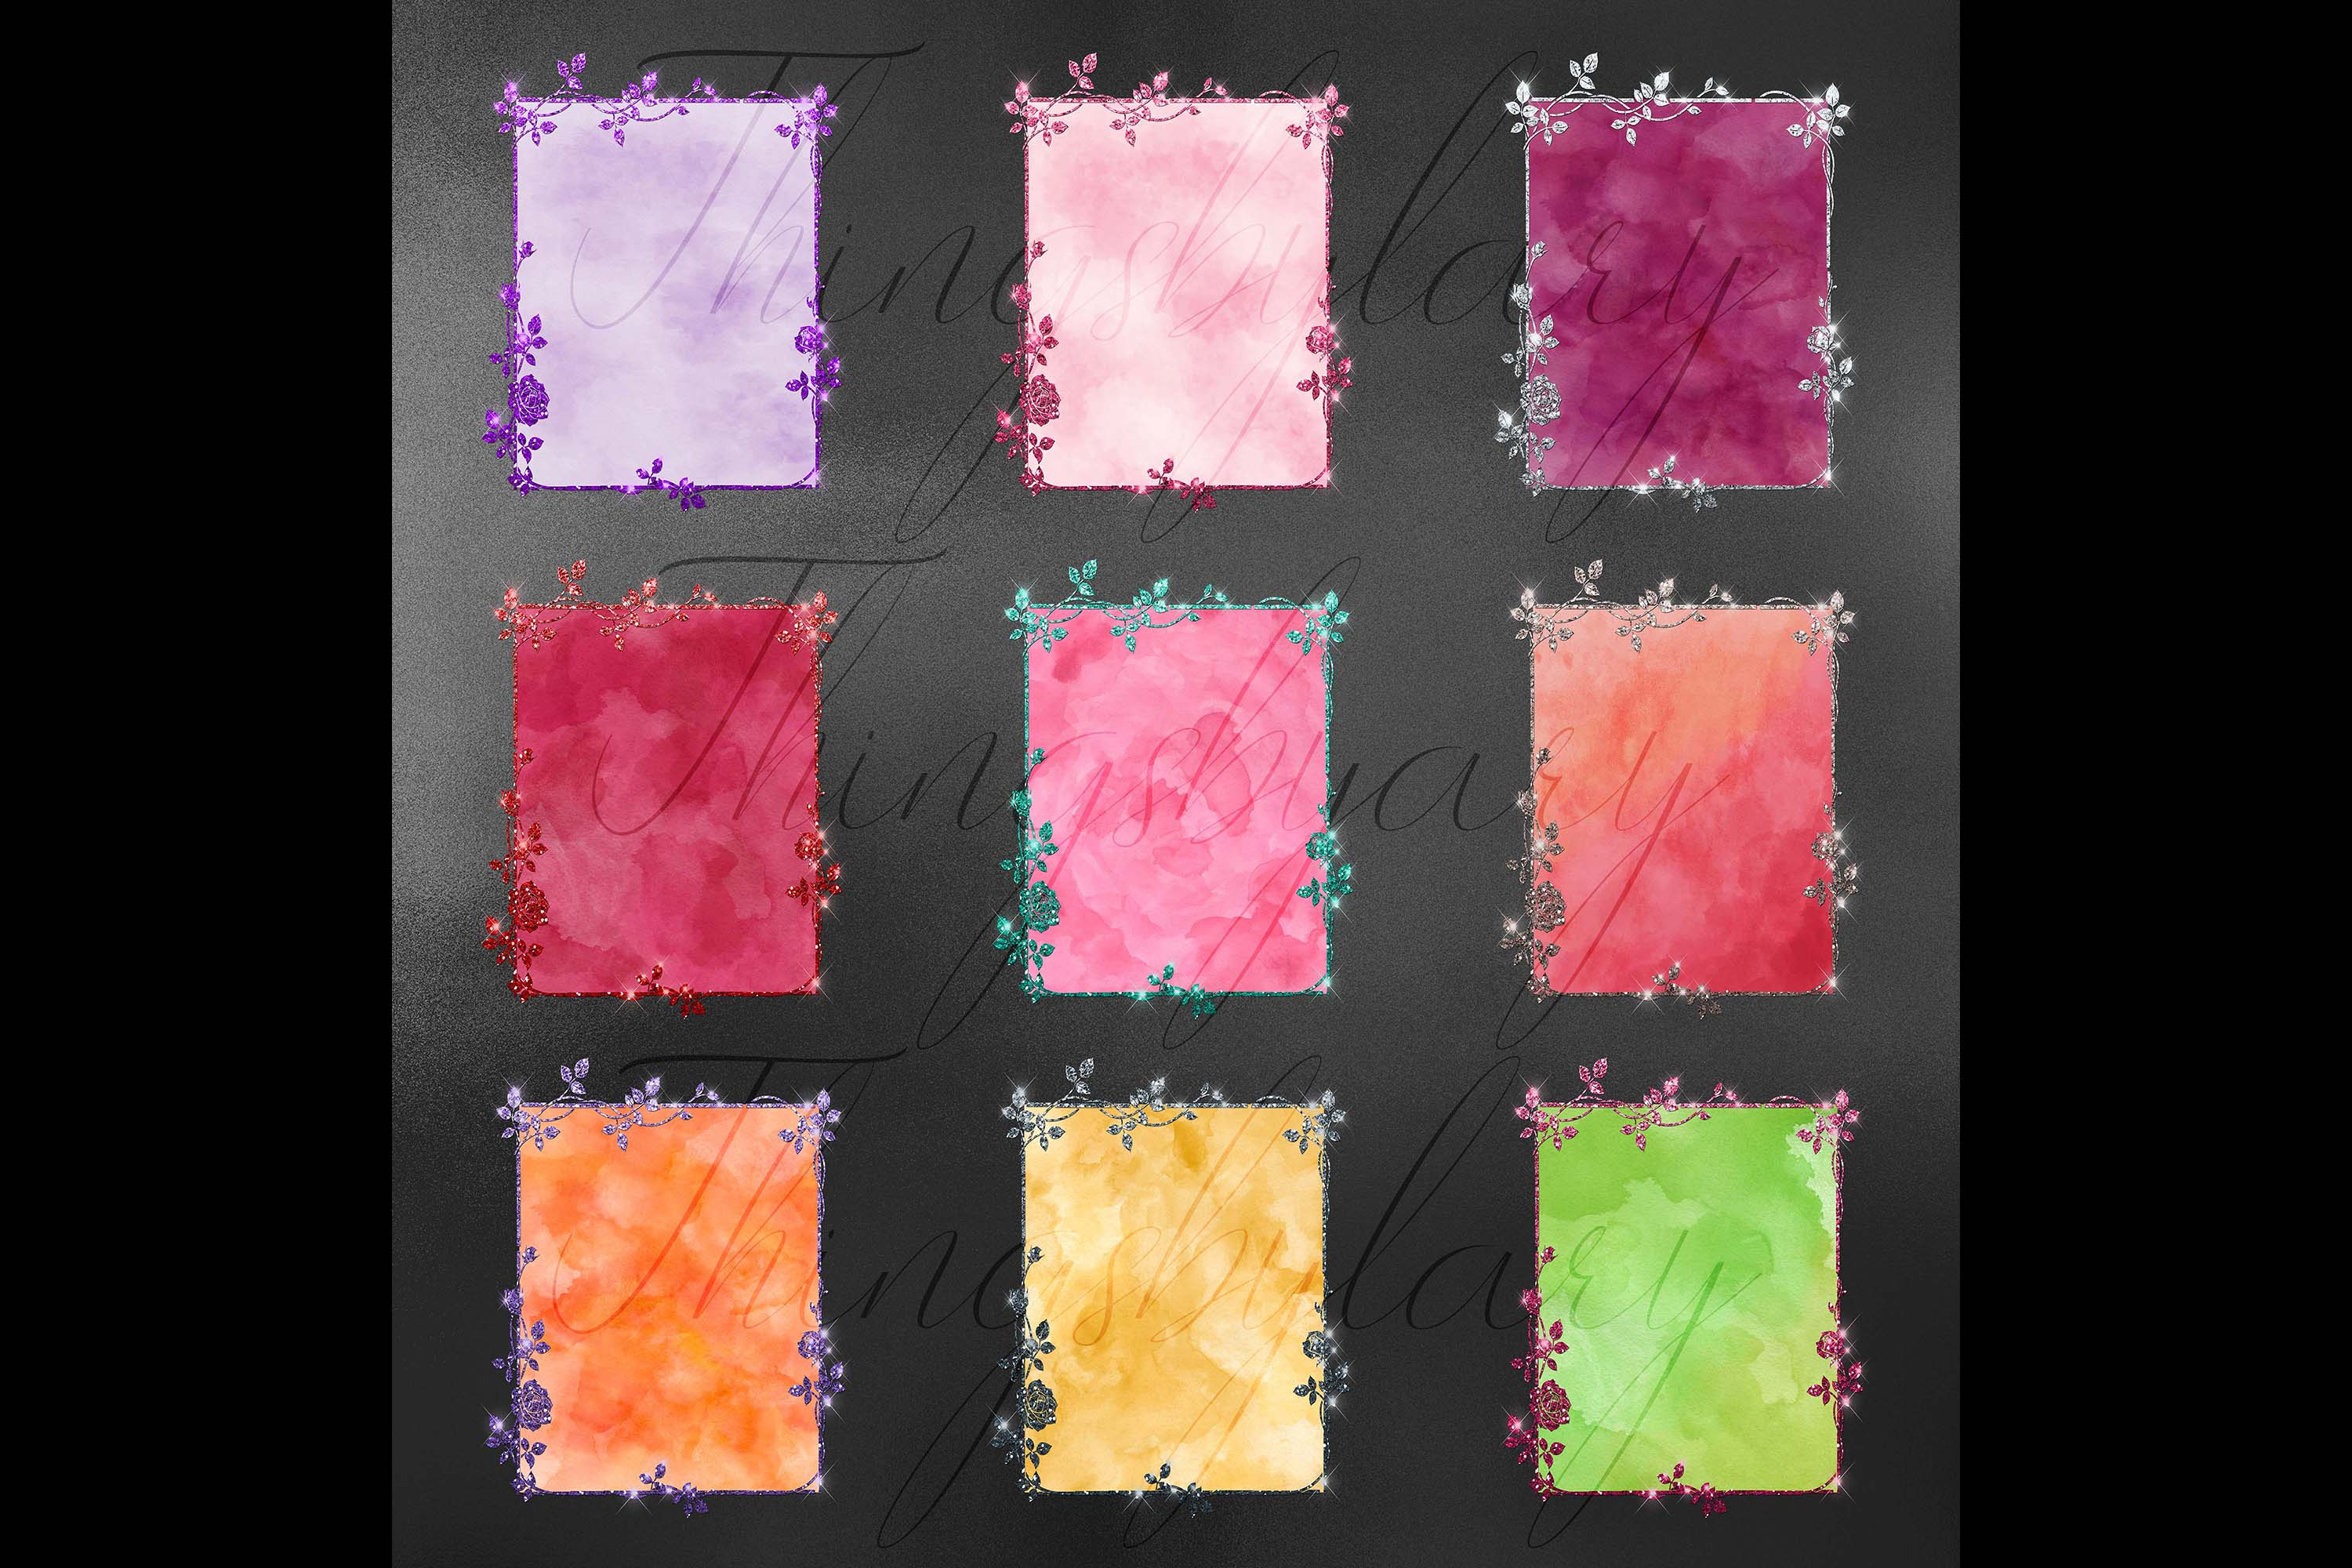 18 Glitter and Watercolor Leaf Branch Floral Frame Card example image 9